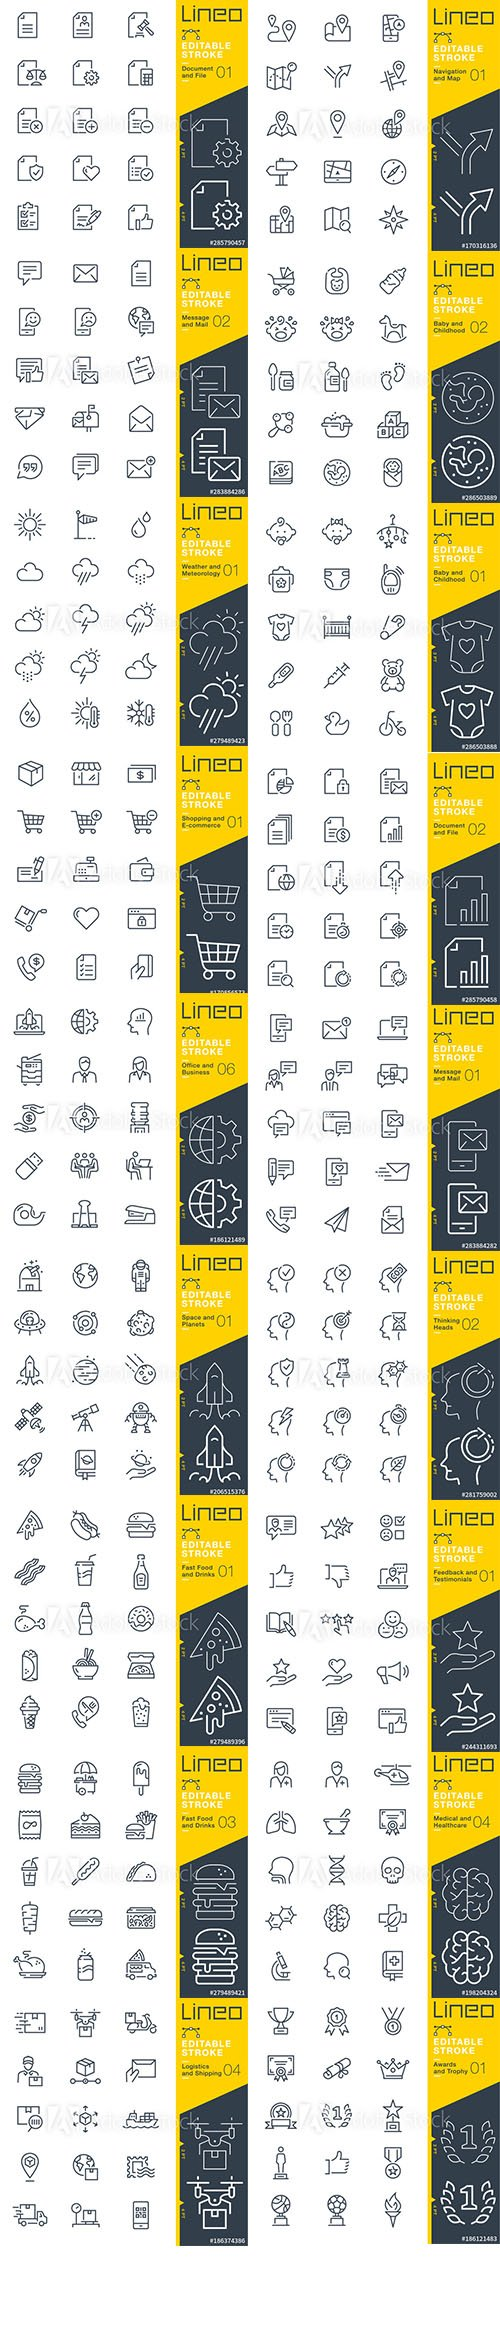 Outline Icons Pack Lineo Vol6